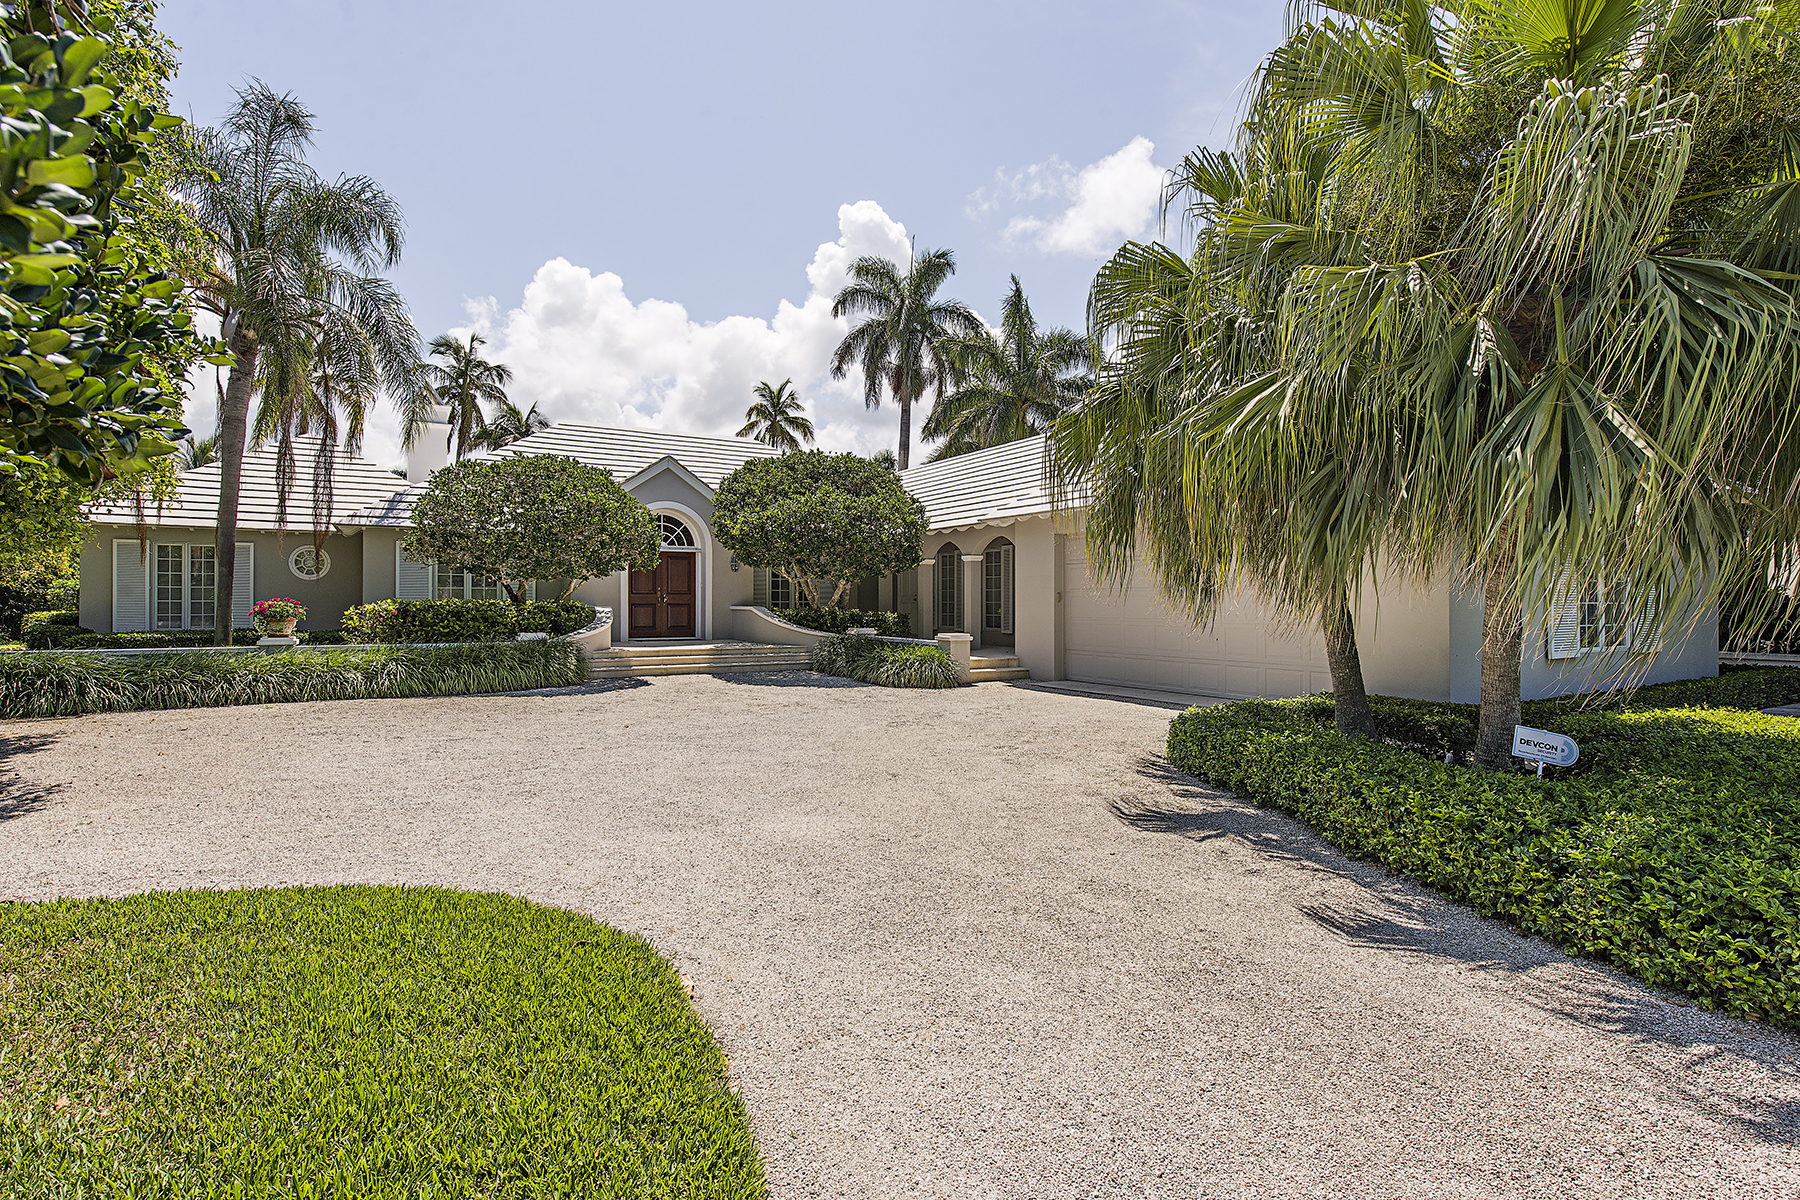 Single Family Home for Rent at PORT ROYAL 3323 Gin Ln Naples, Florida 34102 United States